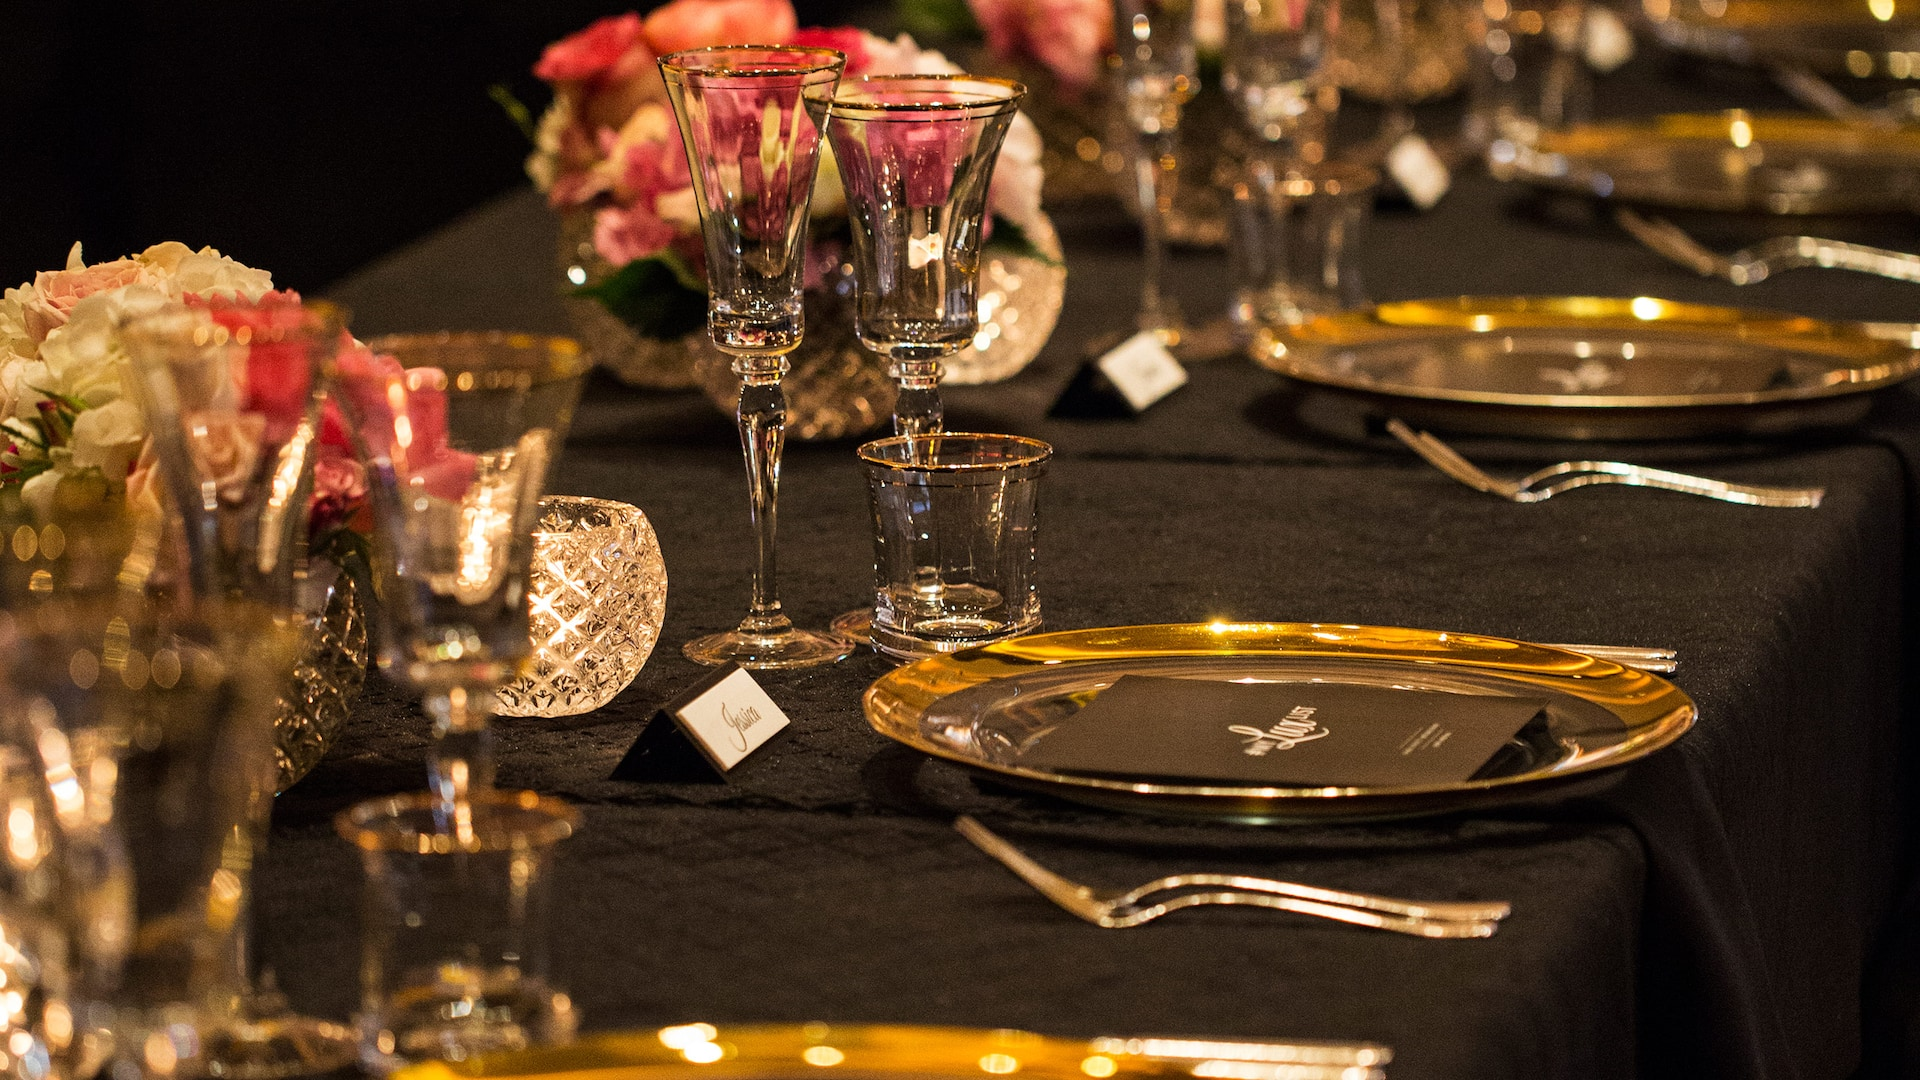 Park Hyatt Melbourne Table Setting